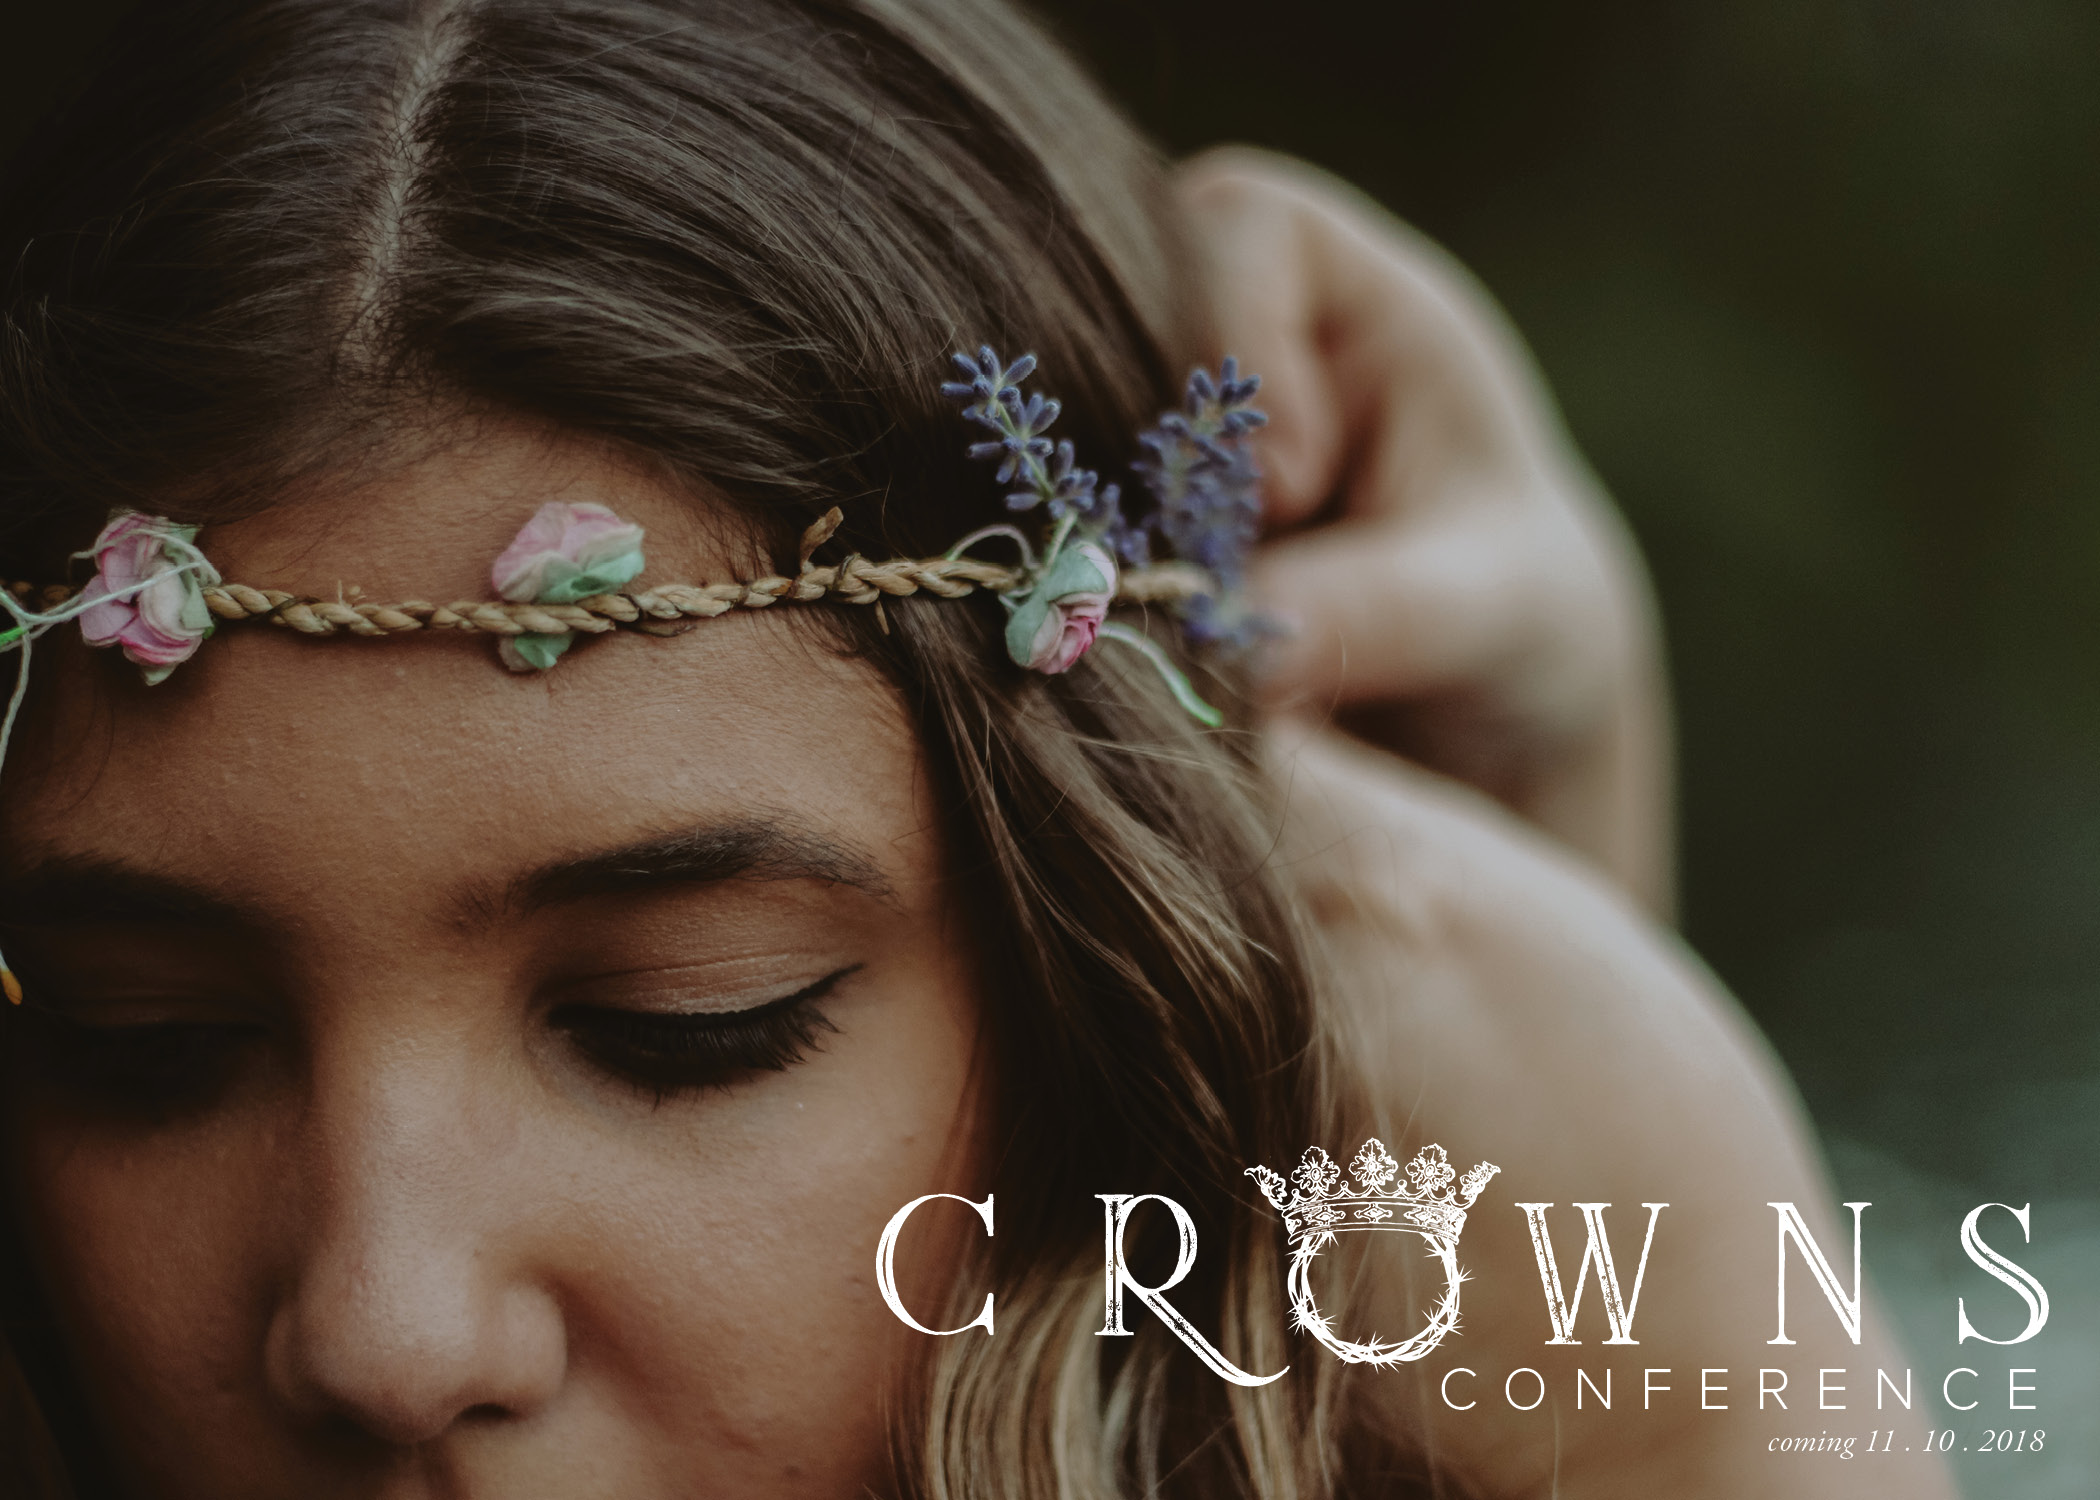 Crowns Conference